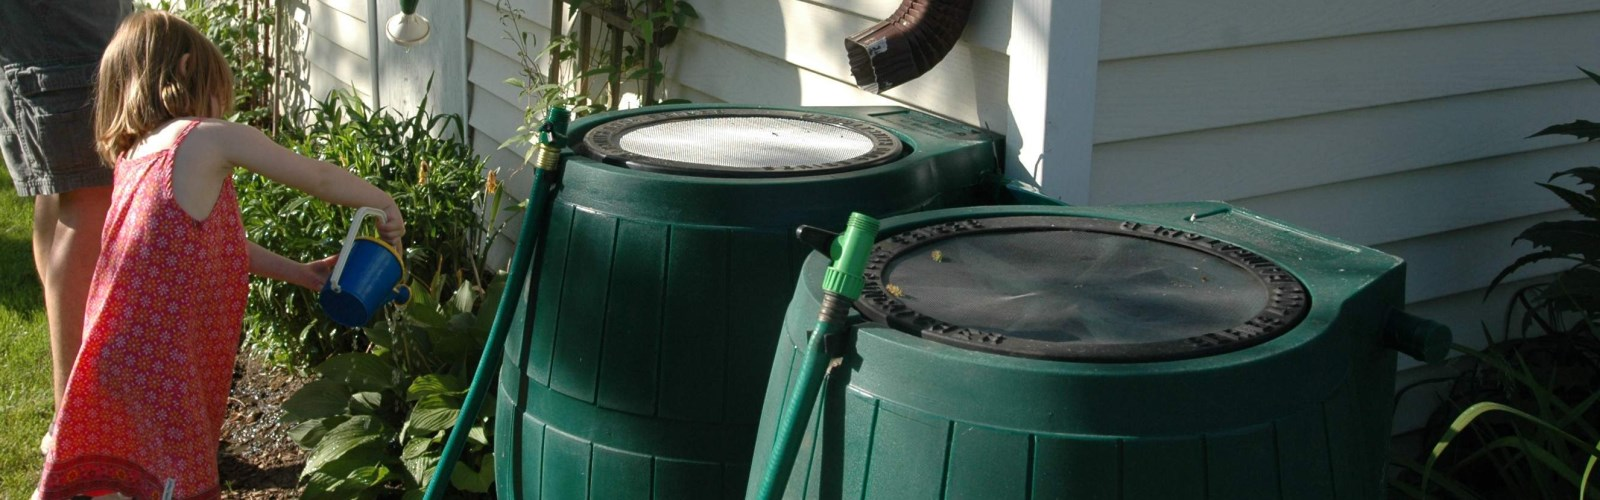 child watering plants with watering can beside rain barrels